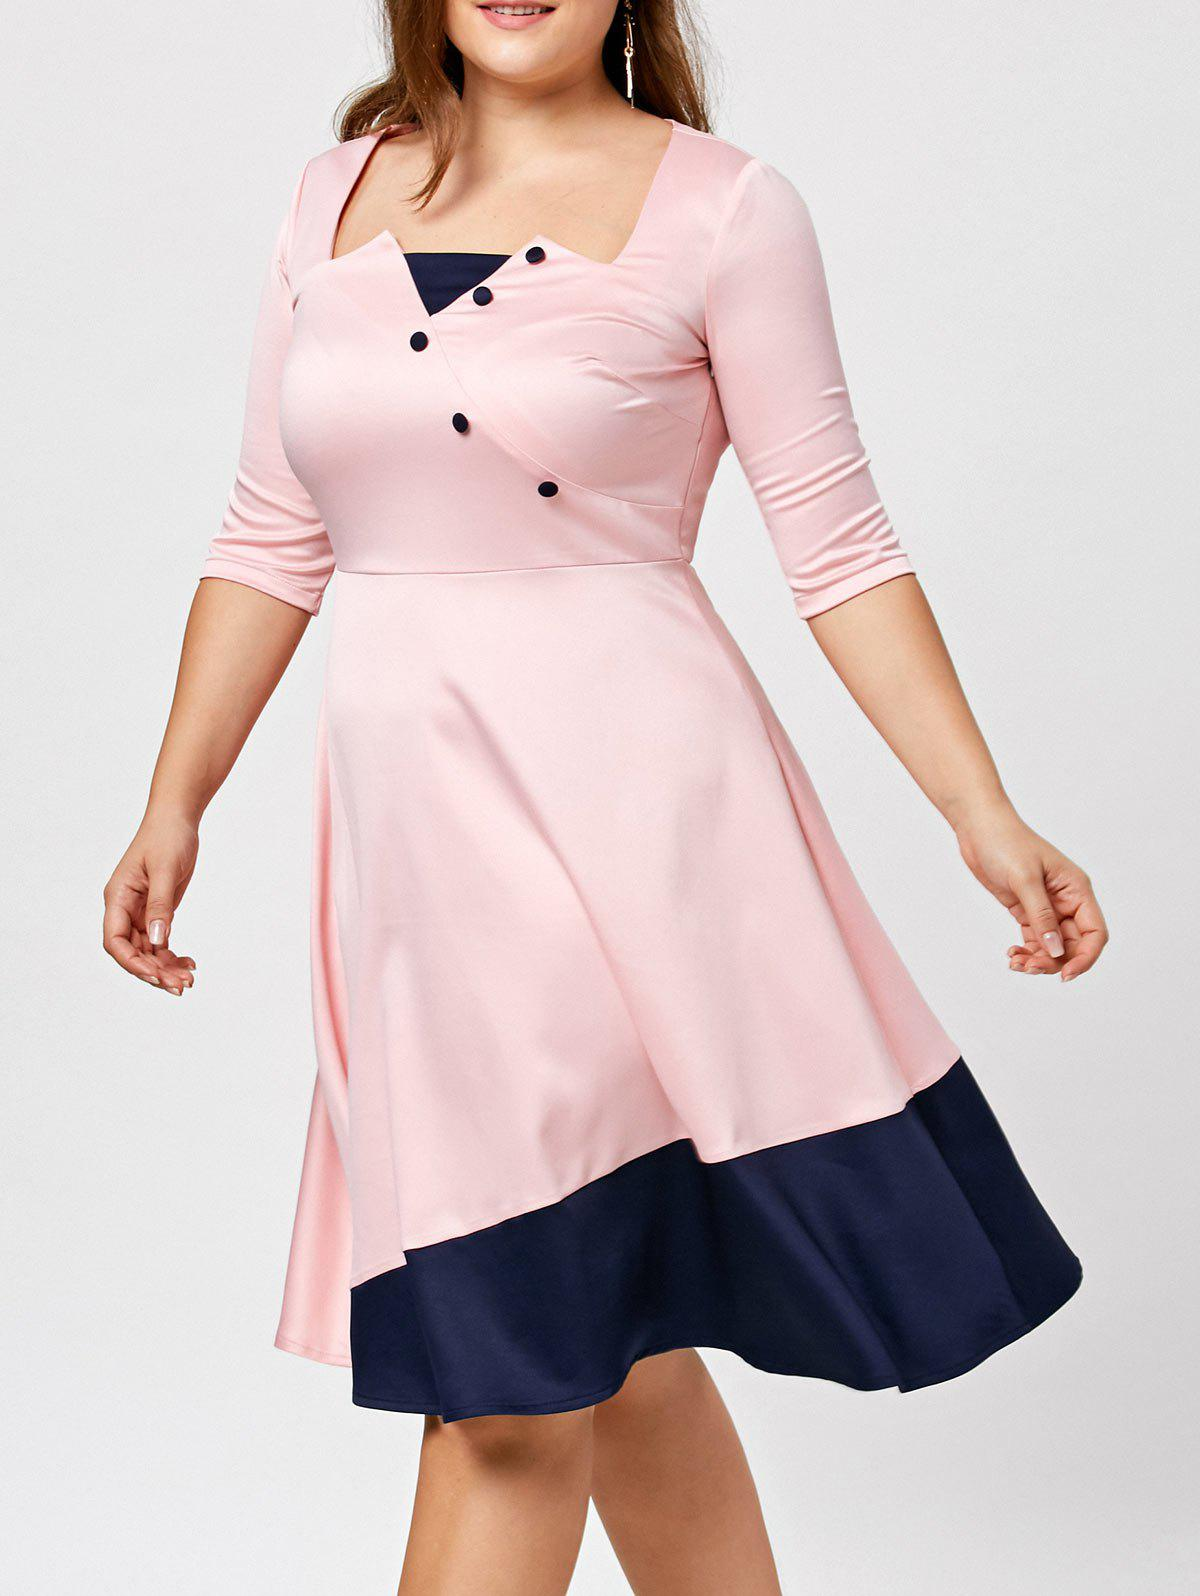 Color Block Plus Size DressWOMEN<br><br>Size: 3XL; Color: PINK; Style: Brief; Material: Cotton,Polyester; Silhouette: A-Line; Dresses Length: Knee-Length; Neckline: Square Collar; Sleeve Length: 3/4 Length Sleeves; Pattern Type: Patchwork; With Belt: No; Season: Fall,Spring; Weight: 0.4000kg; Package Contents: 1 x Dress;